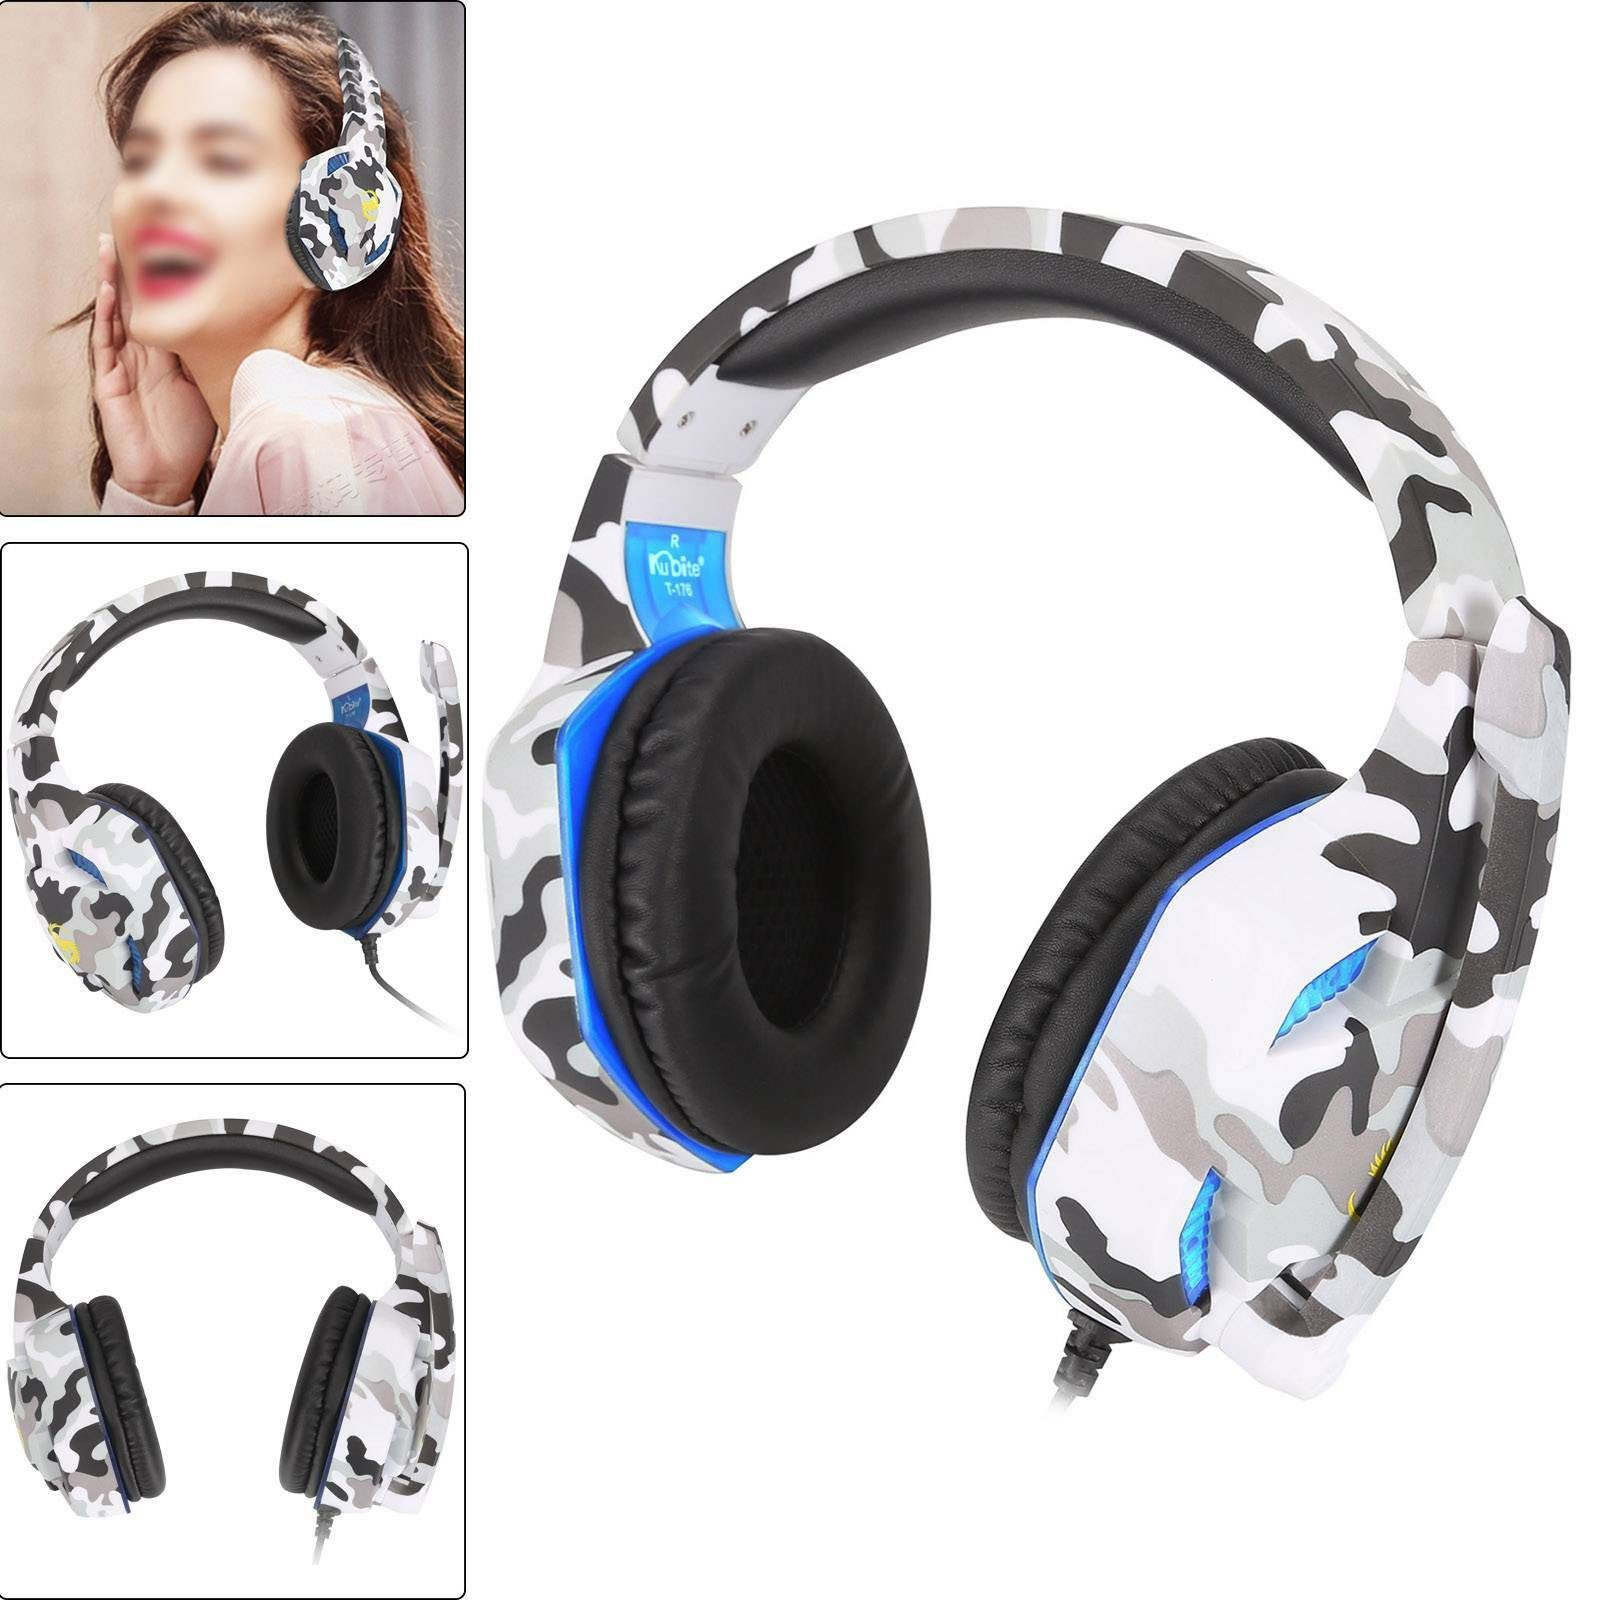 3.5mm K17 Gaming Headset MIC LED Headphones for PC Laptop PS4 Pro Xbox One S 360